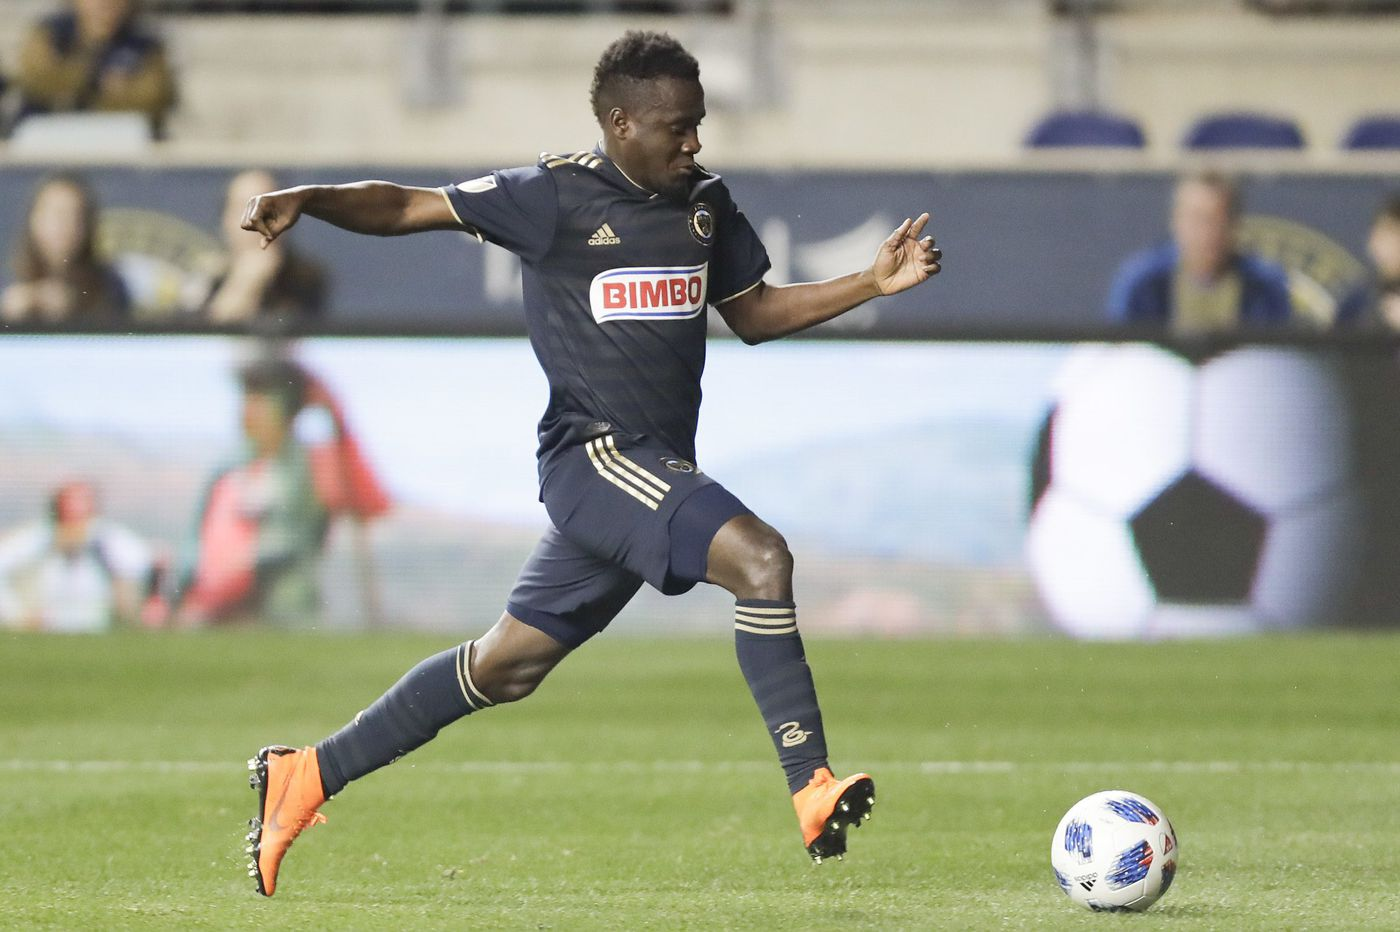 Yankees' loss a win for Union; David Accam has season-ending surgery